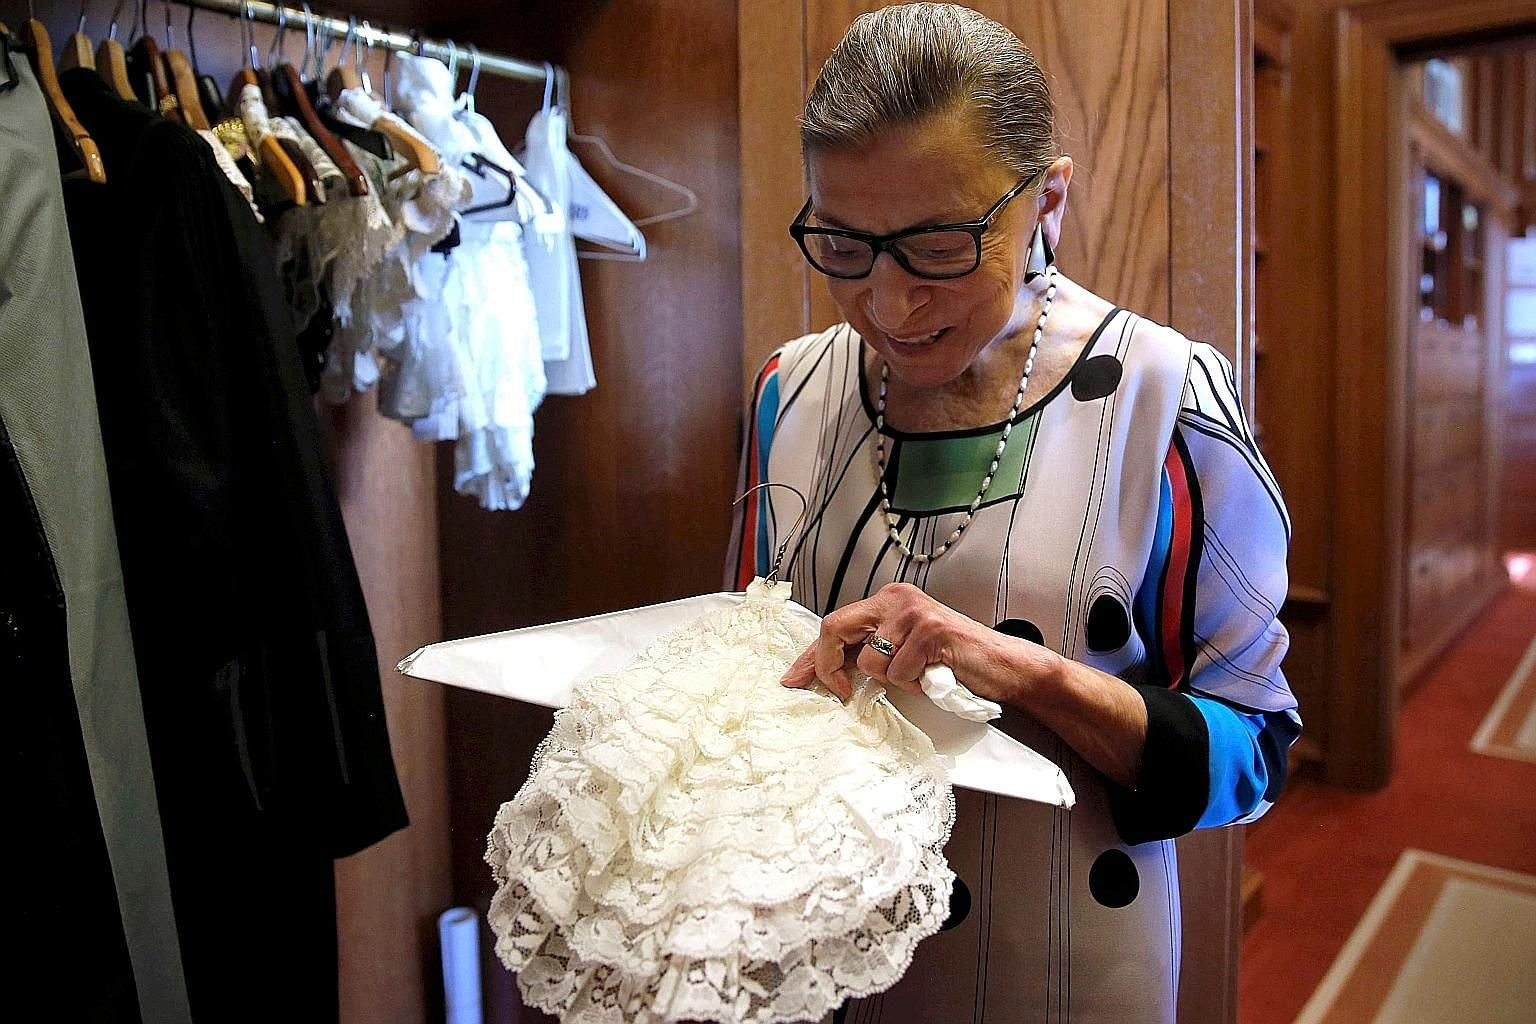 In a photo taken at the US Supreme Court building in Washington in 2016, Justice Ruth Bader Ginsburg showed her collection of collars.